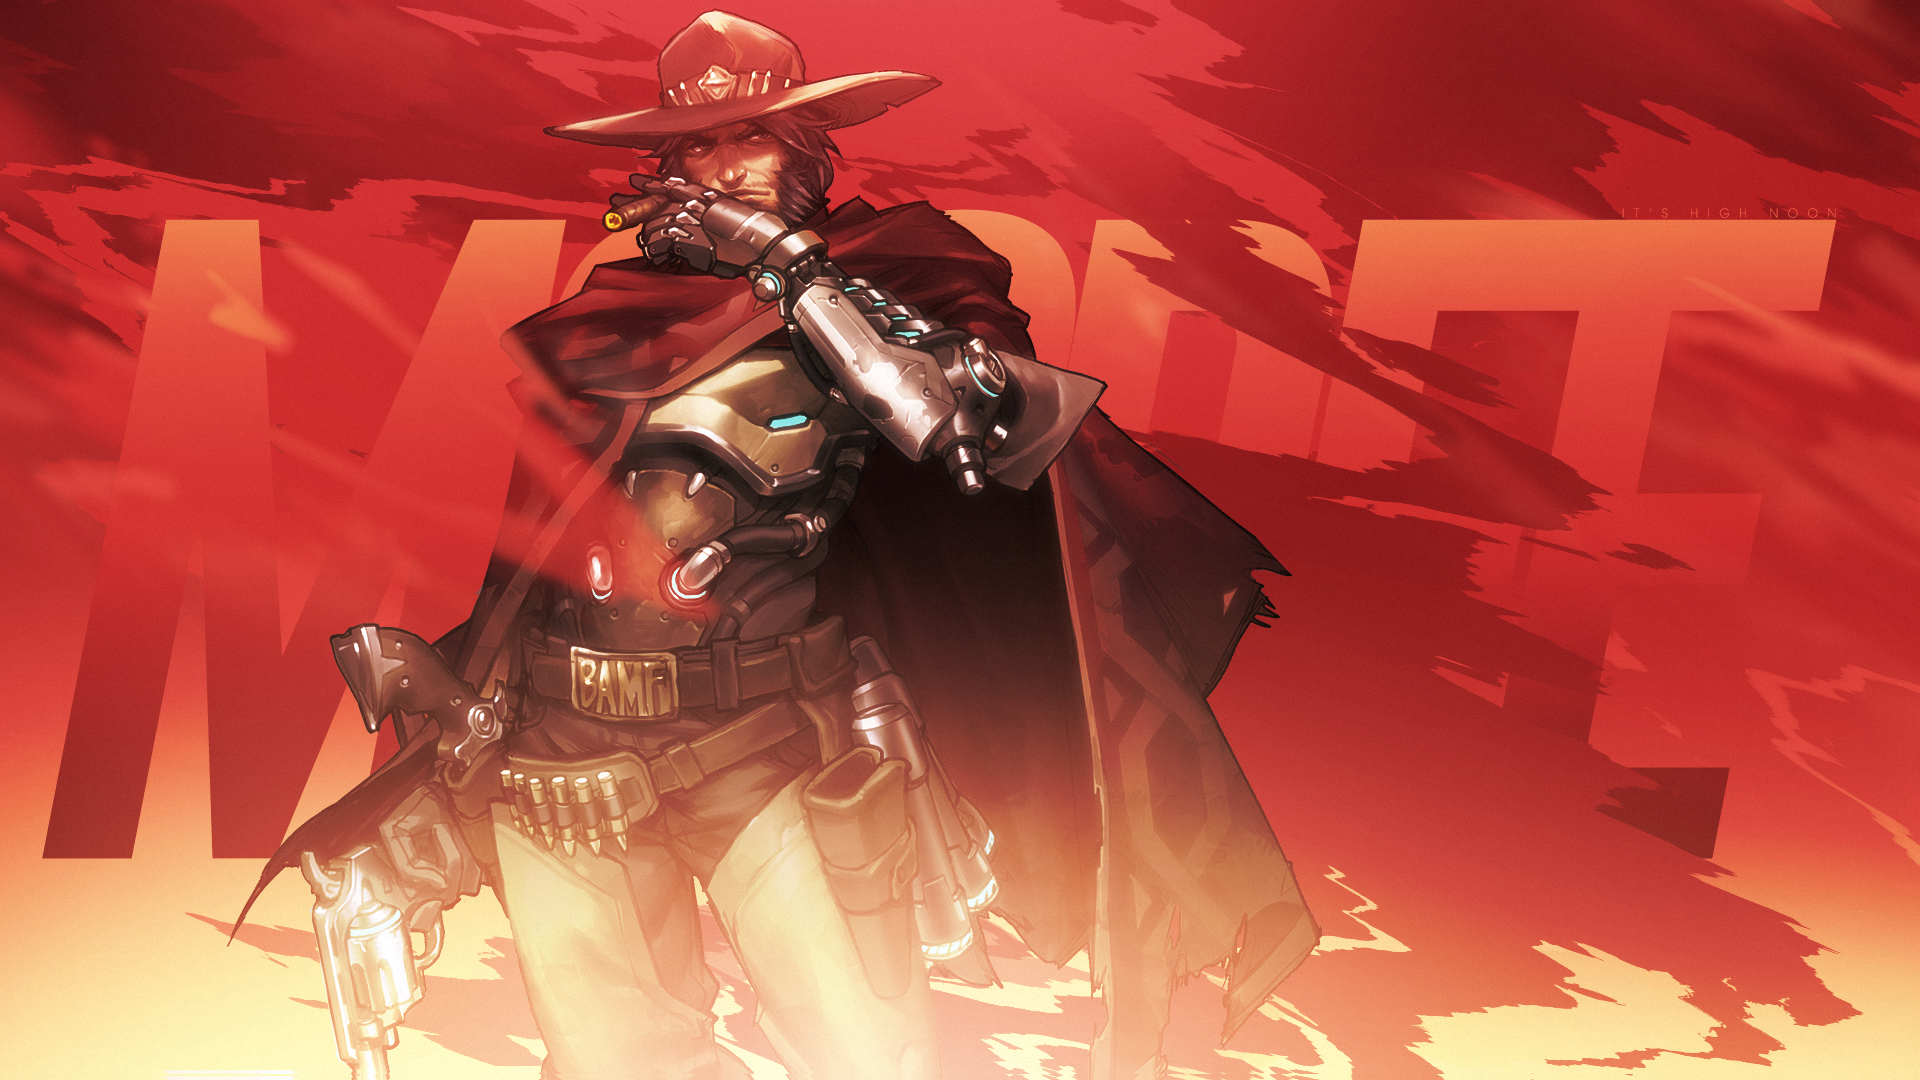 overwatch_mccree_wallpaper_by_mikoyanx-d8uzyvv.png